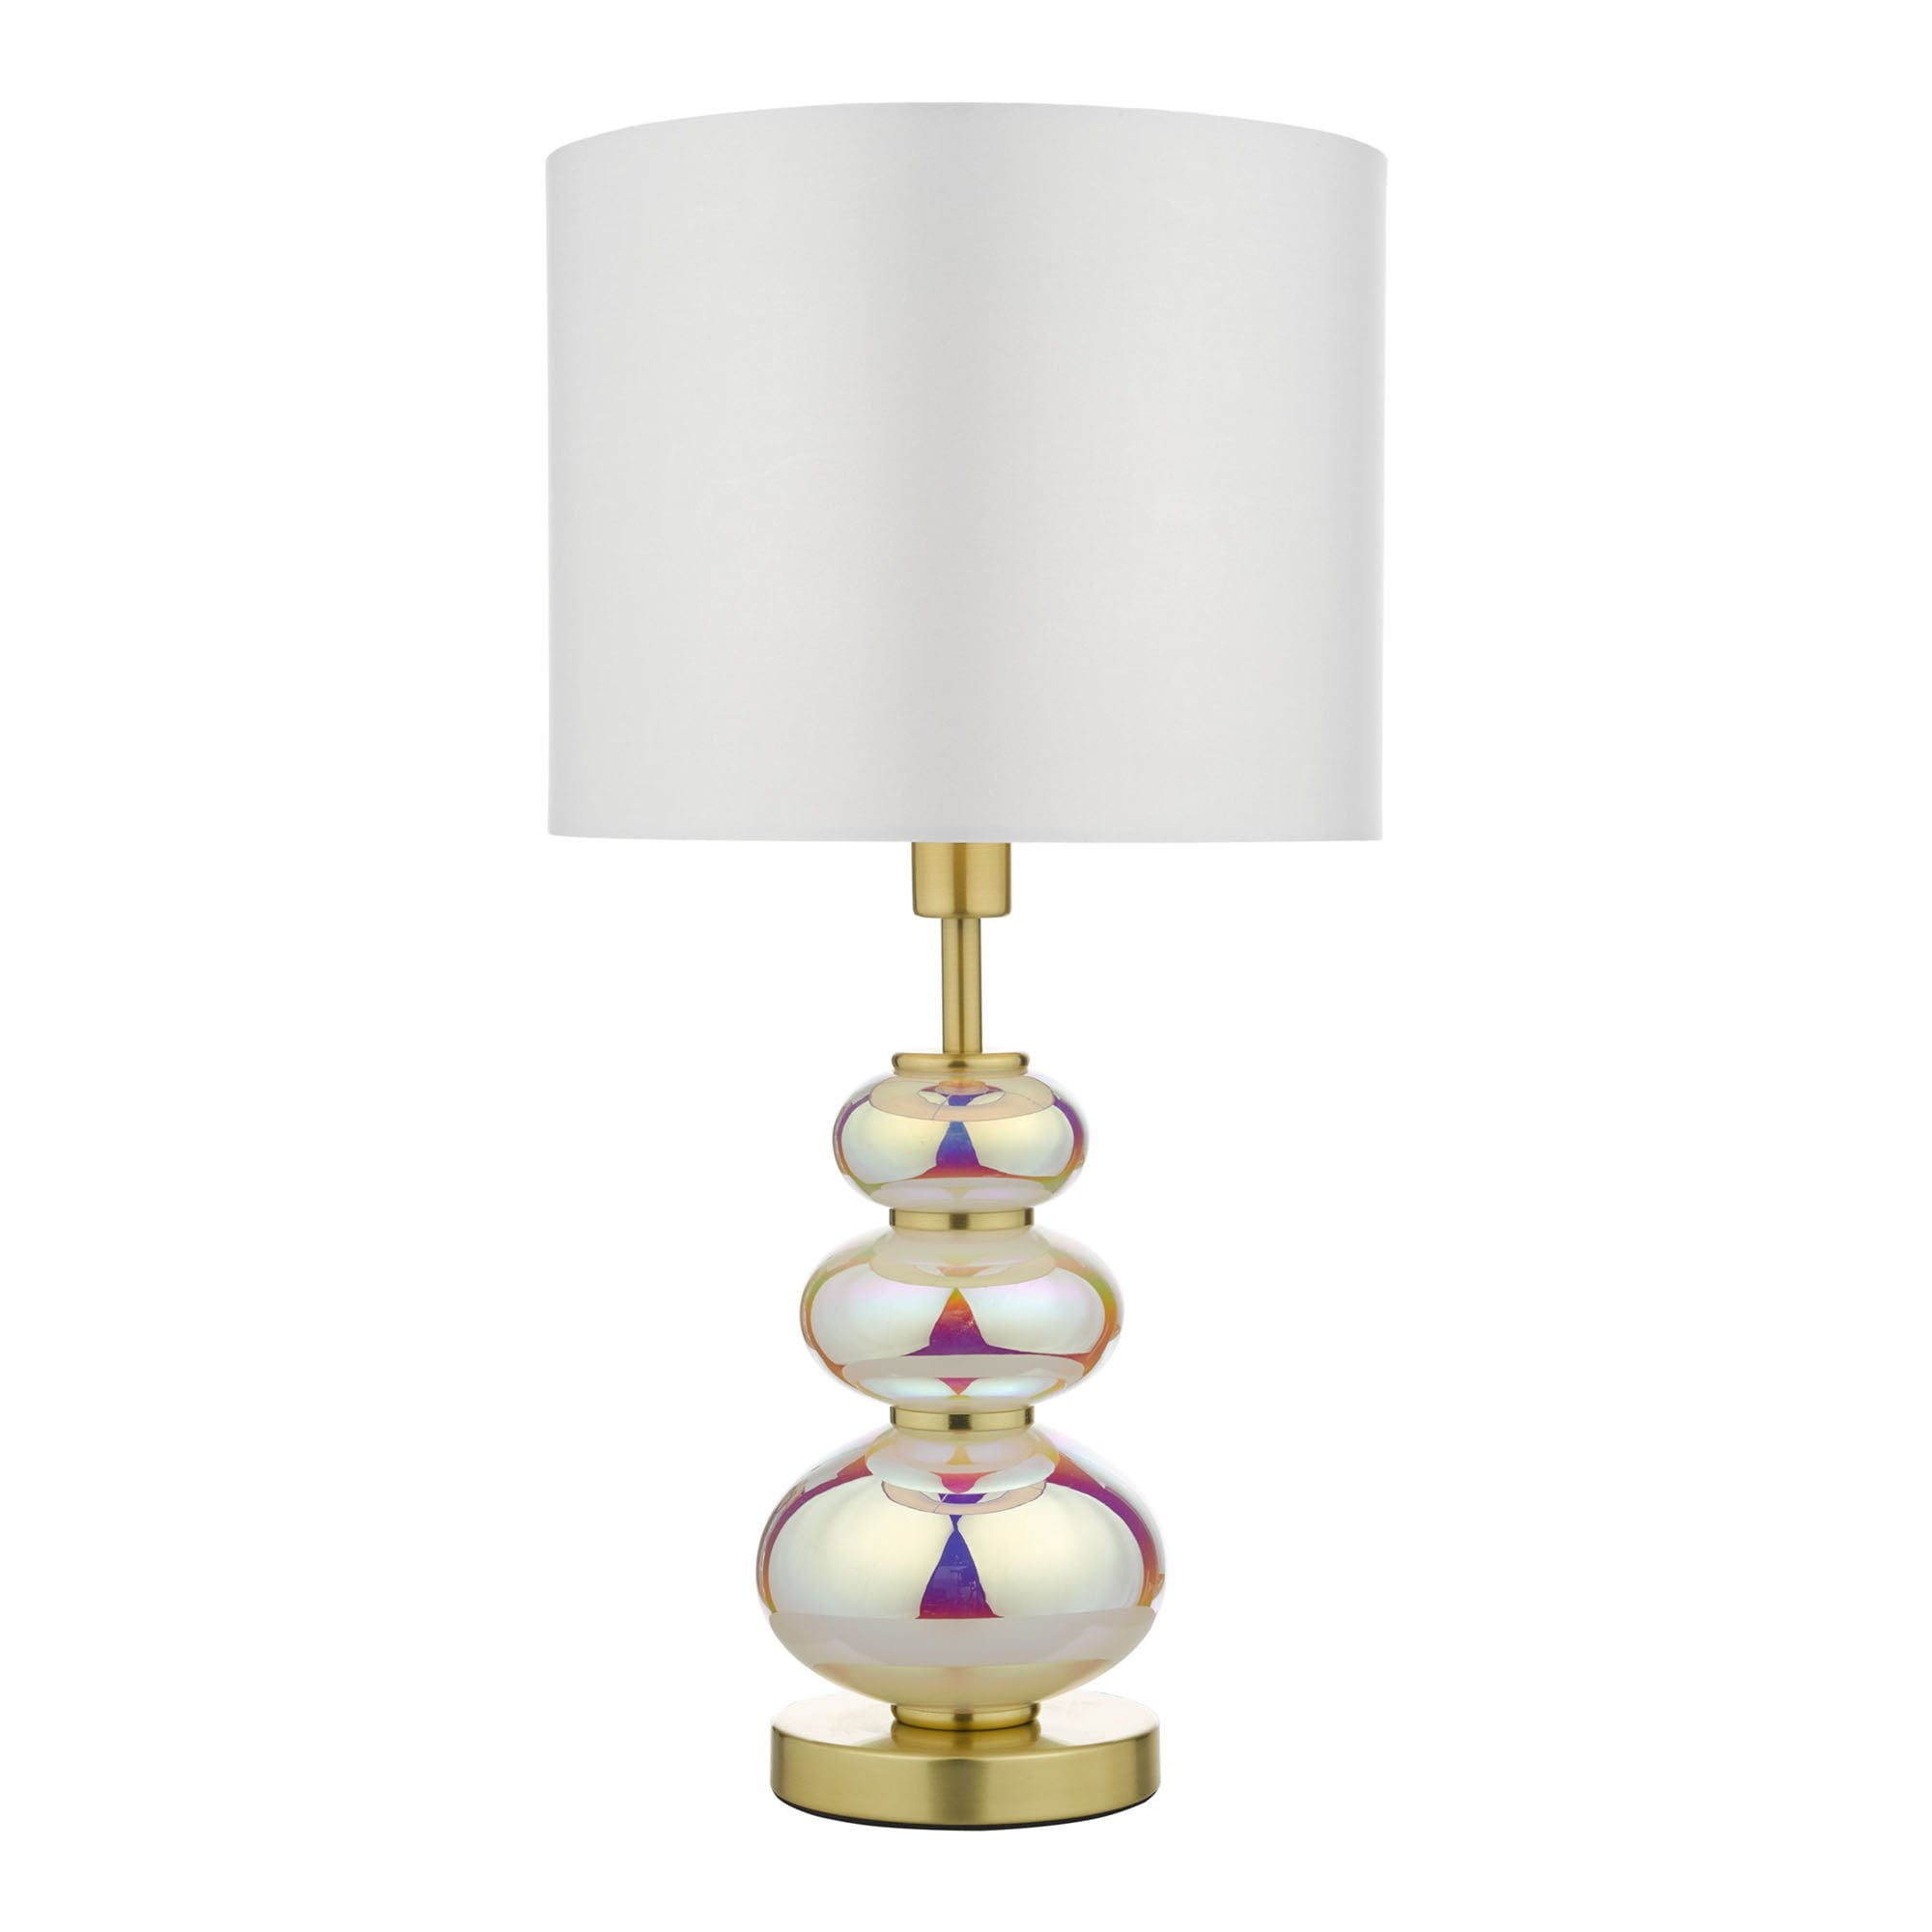 Oaks Lighting Corby Touch Table Lamp